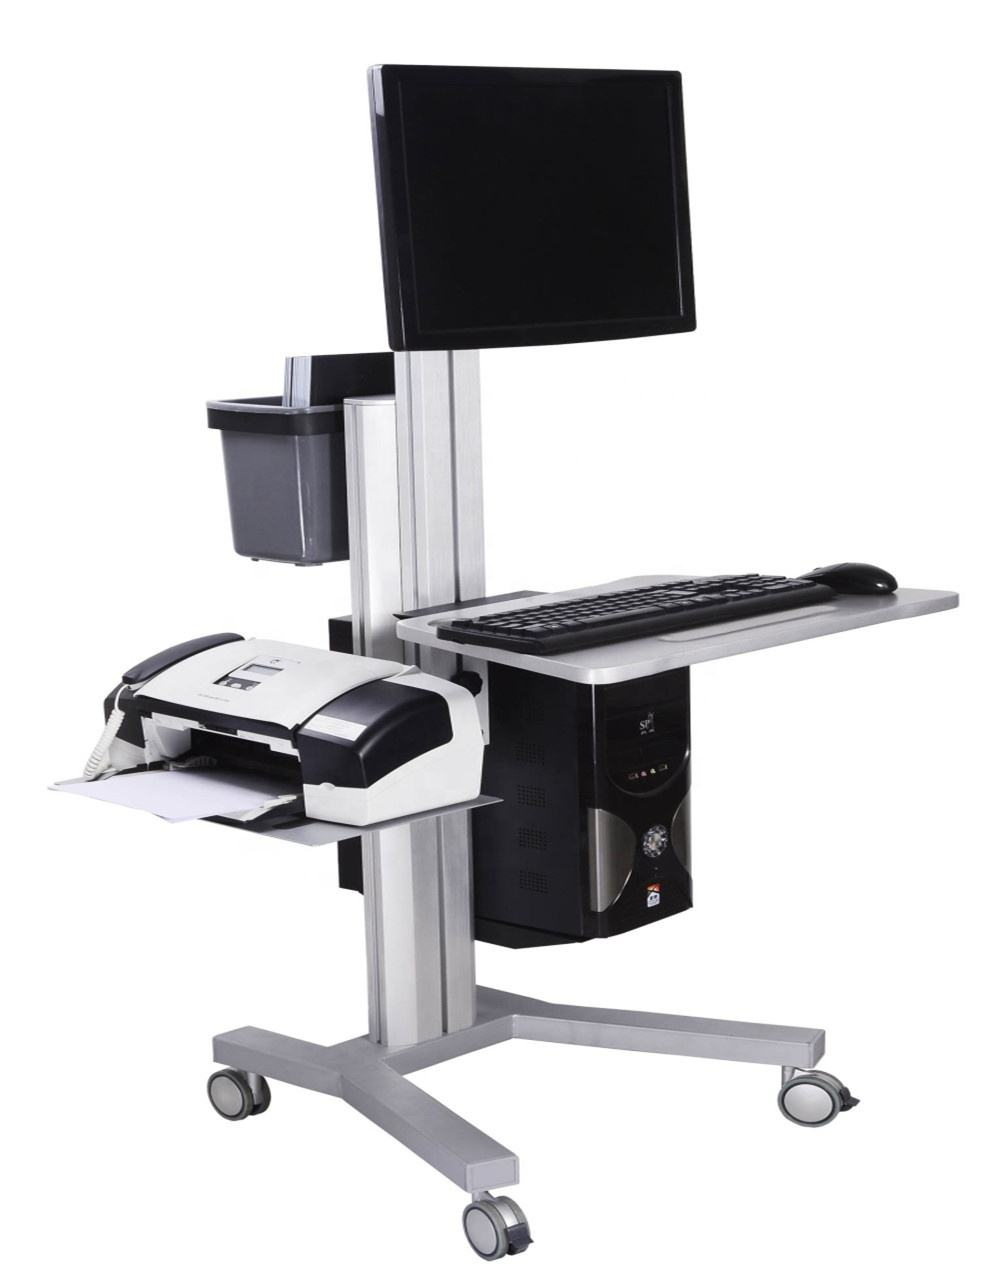 Moving Industrial Laboratory Nursing Medical Hospital Workstation Rolling Mobile Computer Crash Monitor Cart Trolley with Wheels